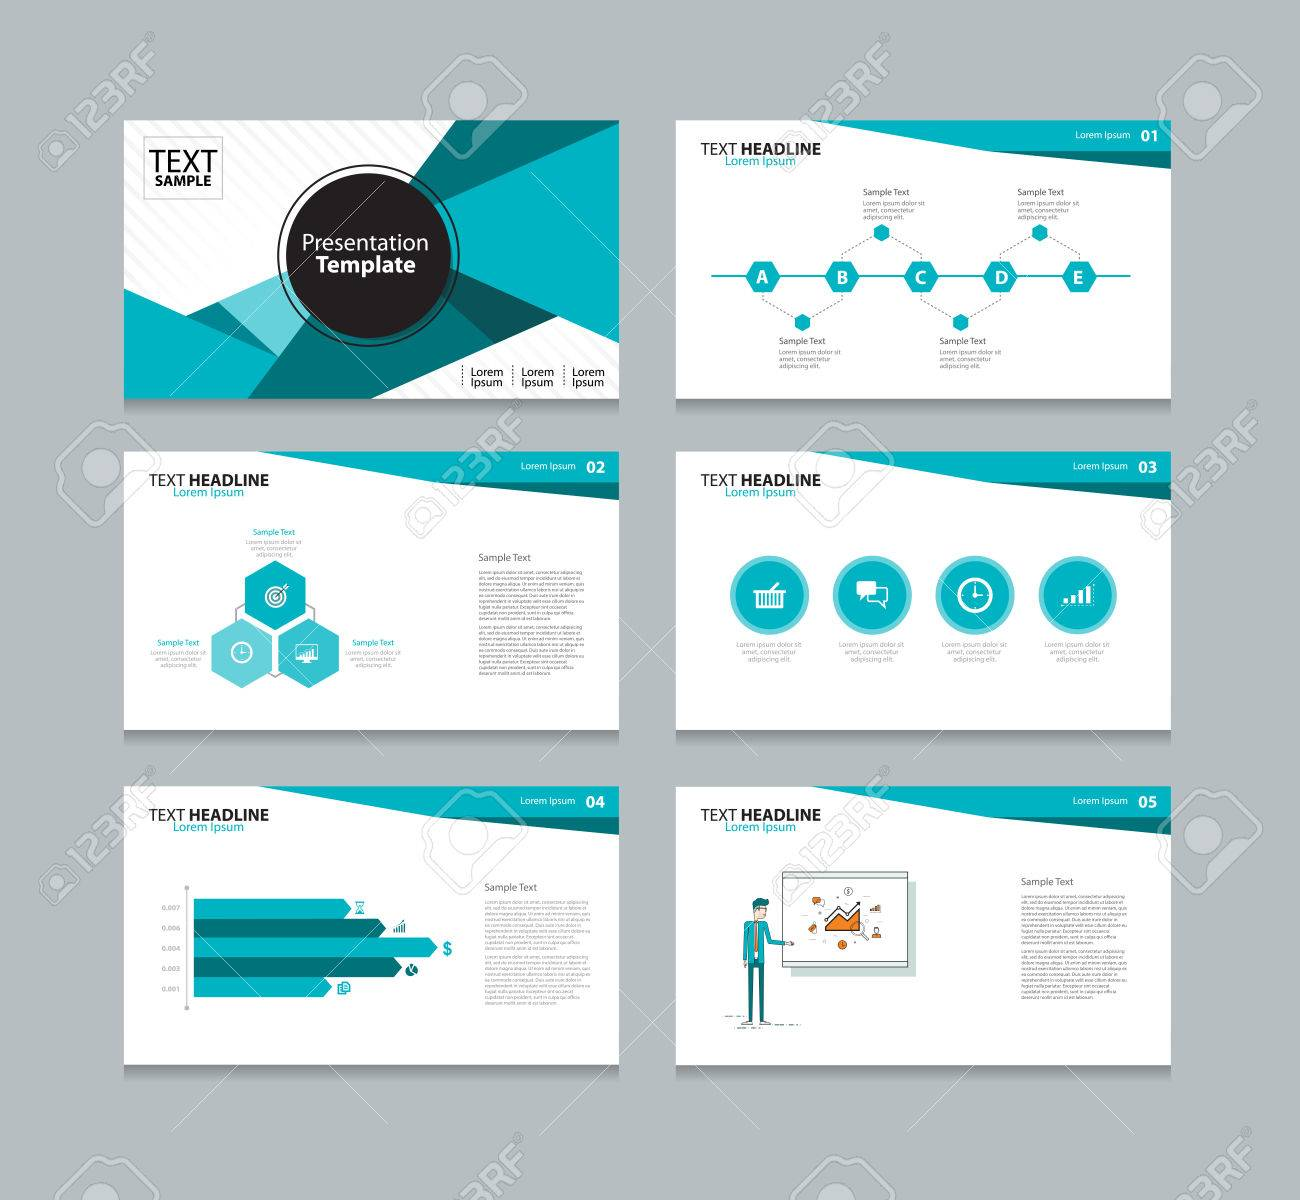 vector template presentation slides background design royalty free